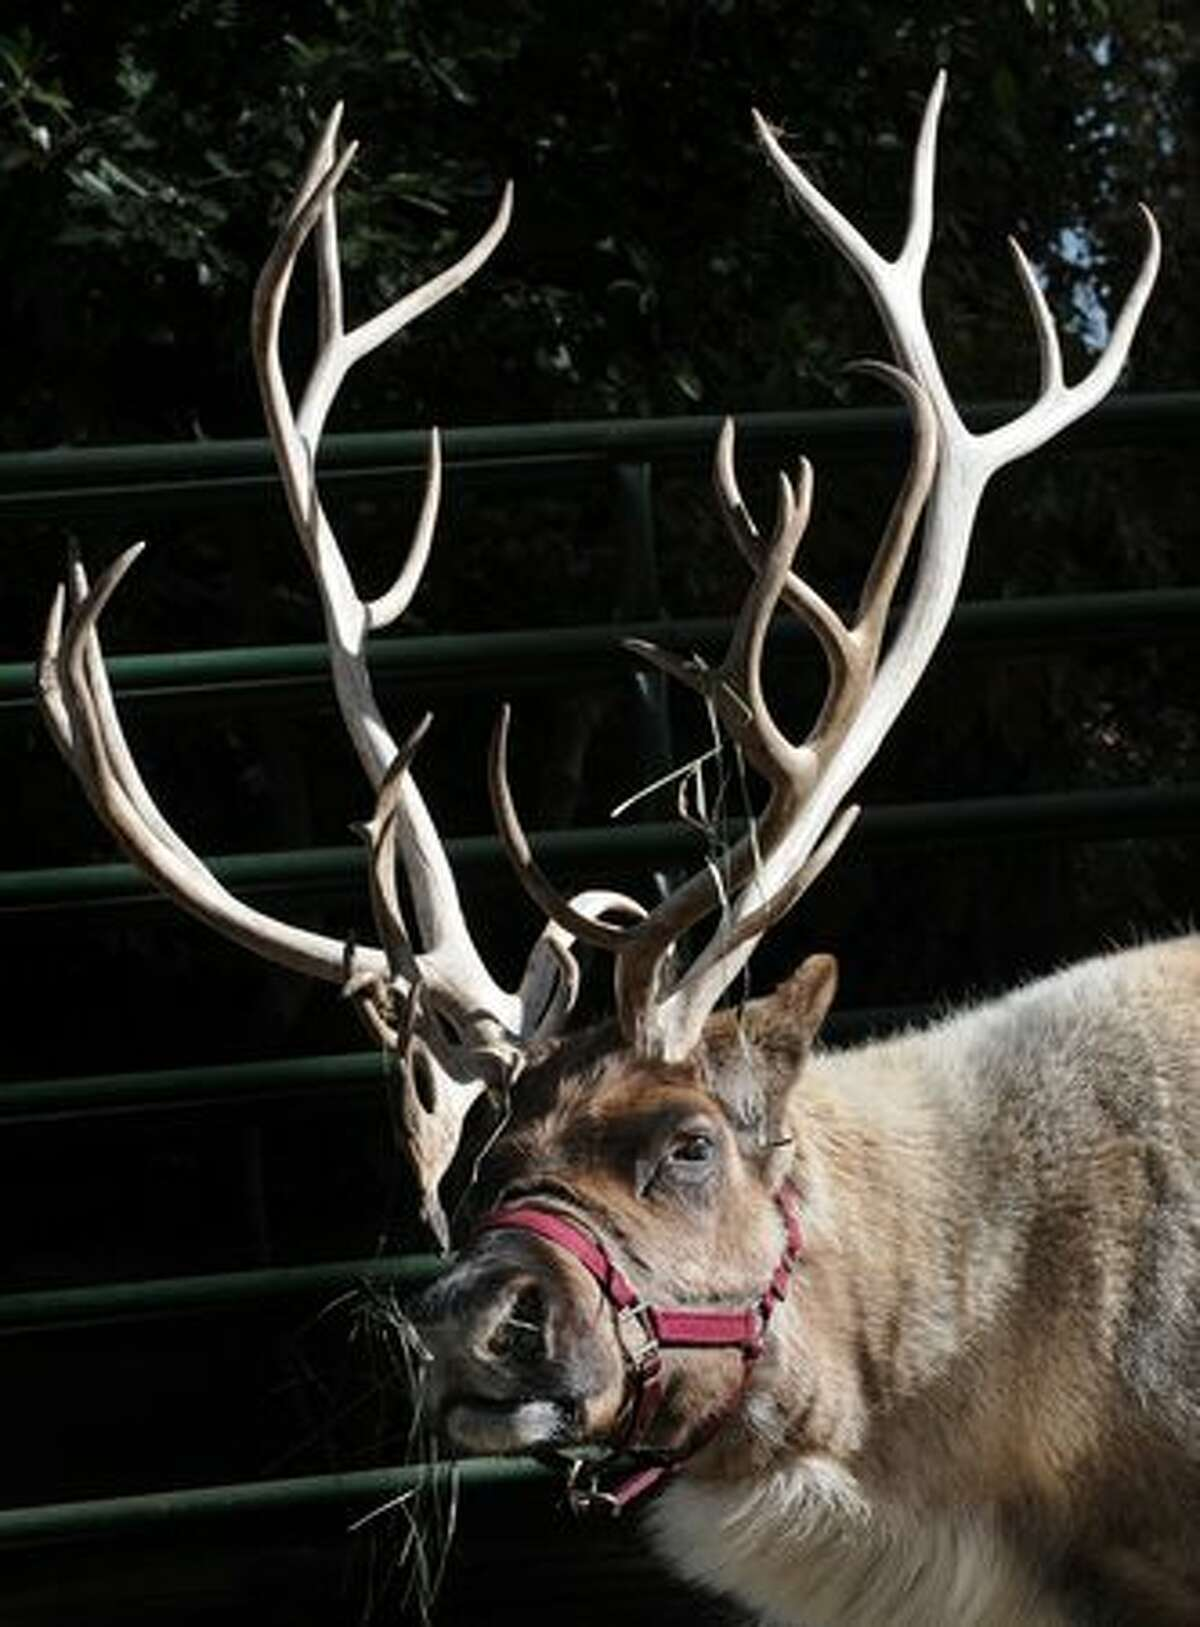 """A reindeer named """"Noah"""" eats in his new enclosure at the Los Angeles Zoo after arriving from Alaska for the """"Reindeer Romp"""", an annual Christmas holiday event held at the zoo until the New Year."""